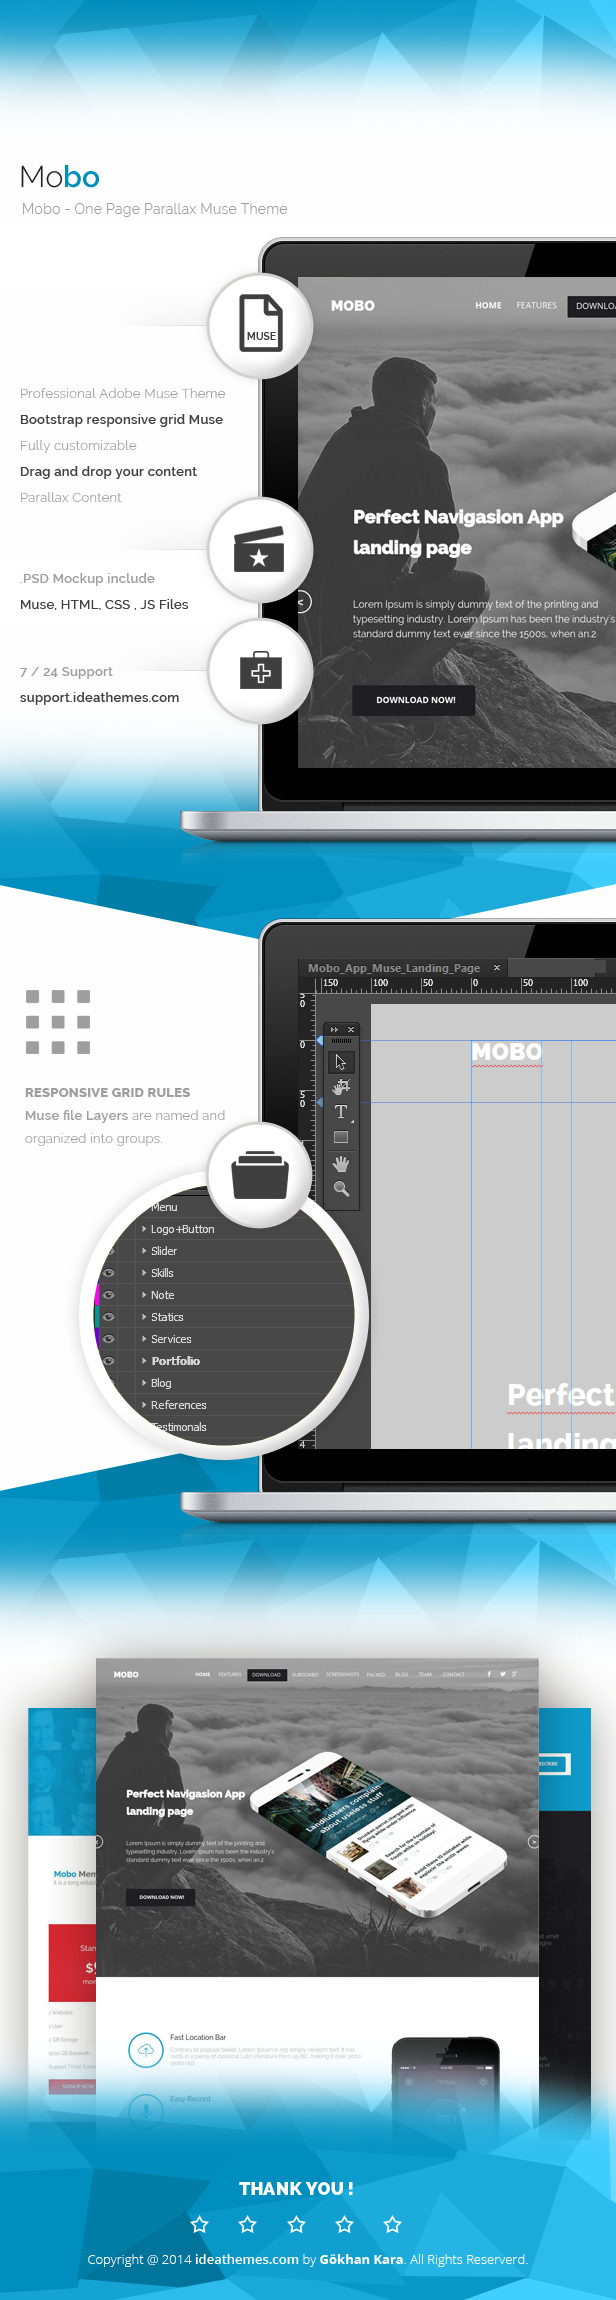 Mobo - One Page Parallax Muse Theme - 2